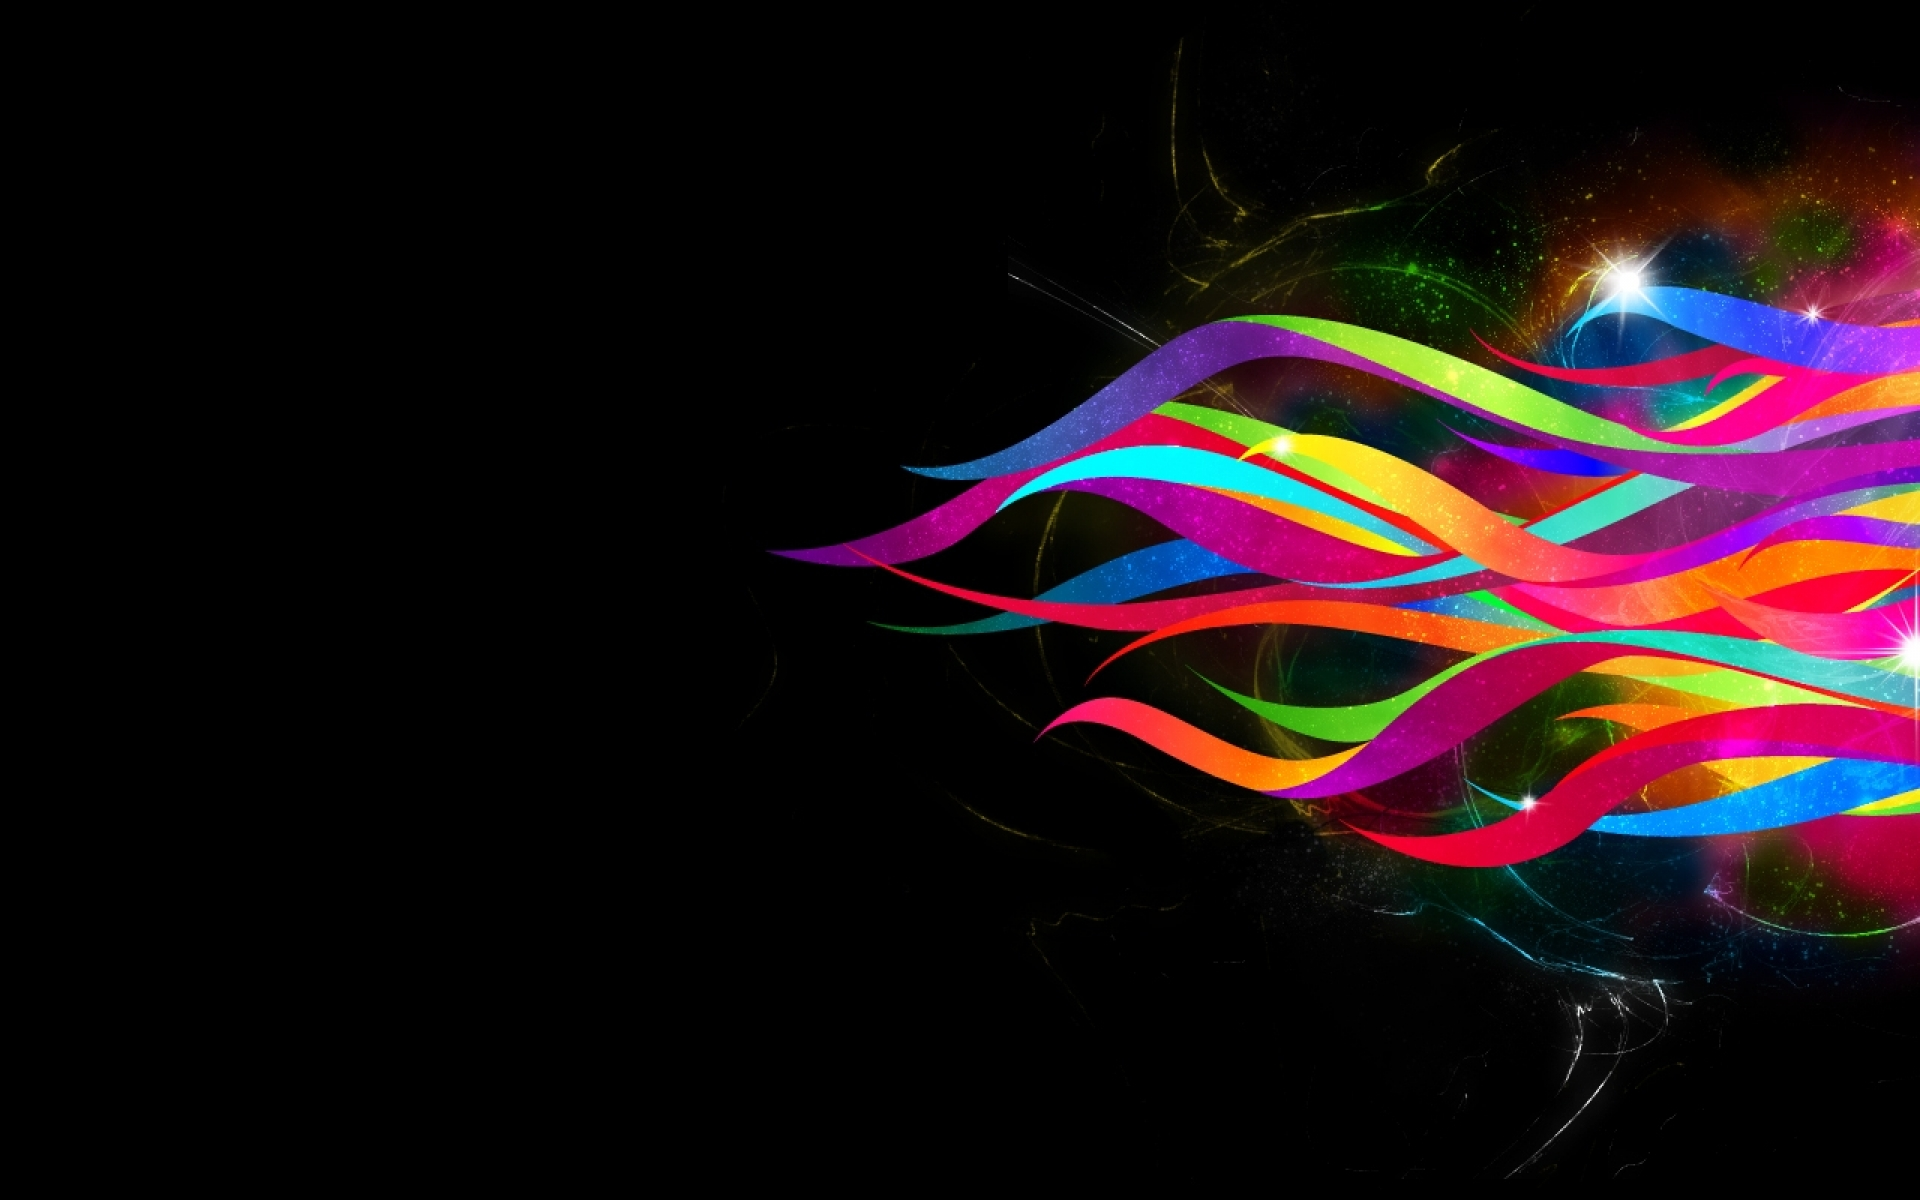 Image Abstract Ribbons Rainbow Wallpapers And Stock Photos